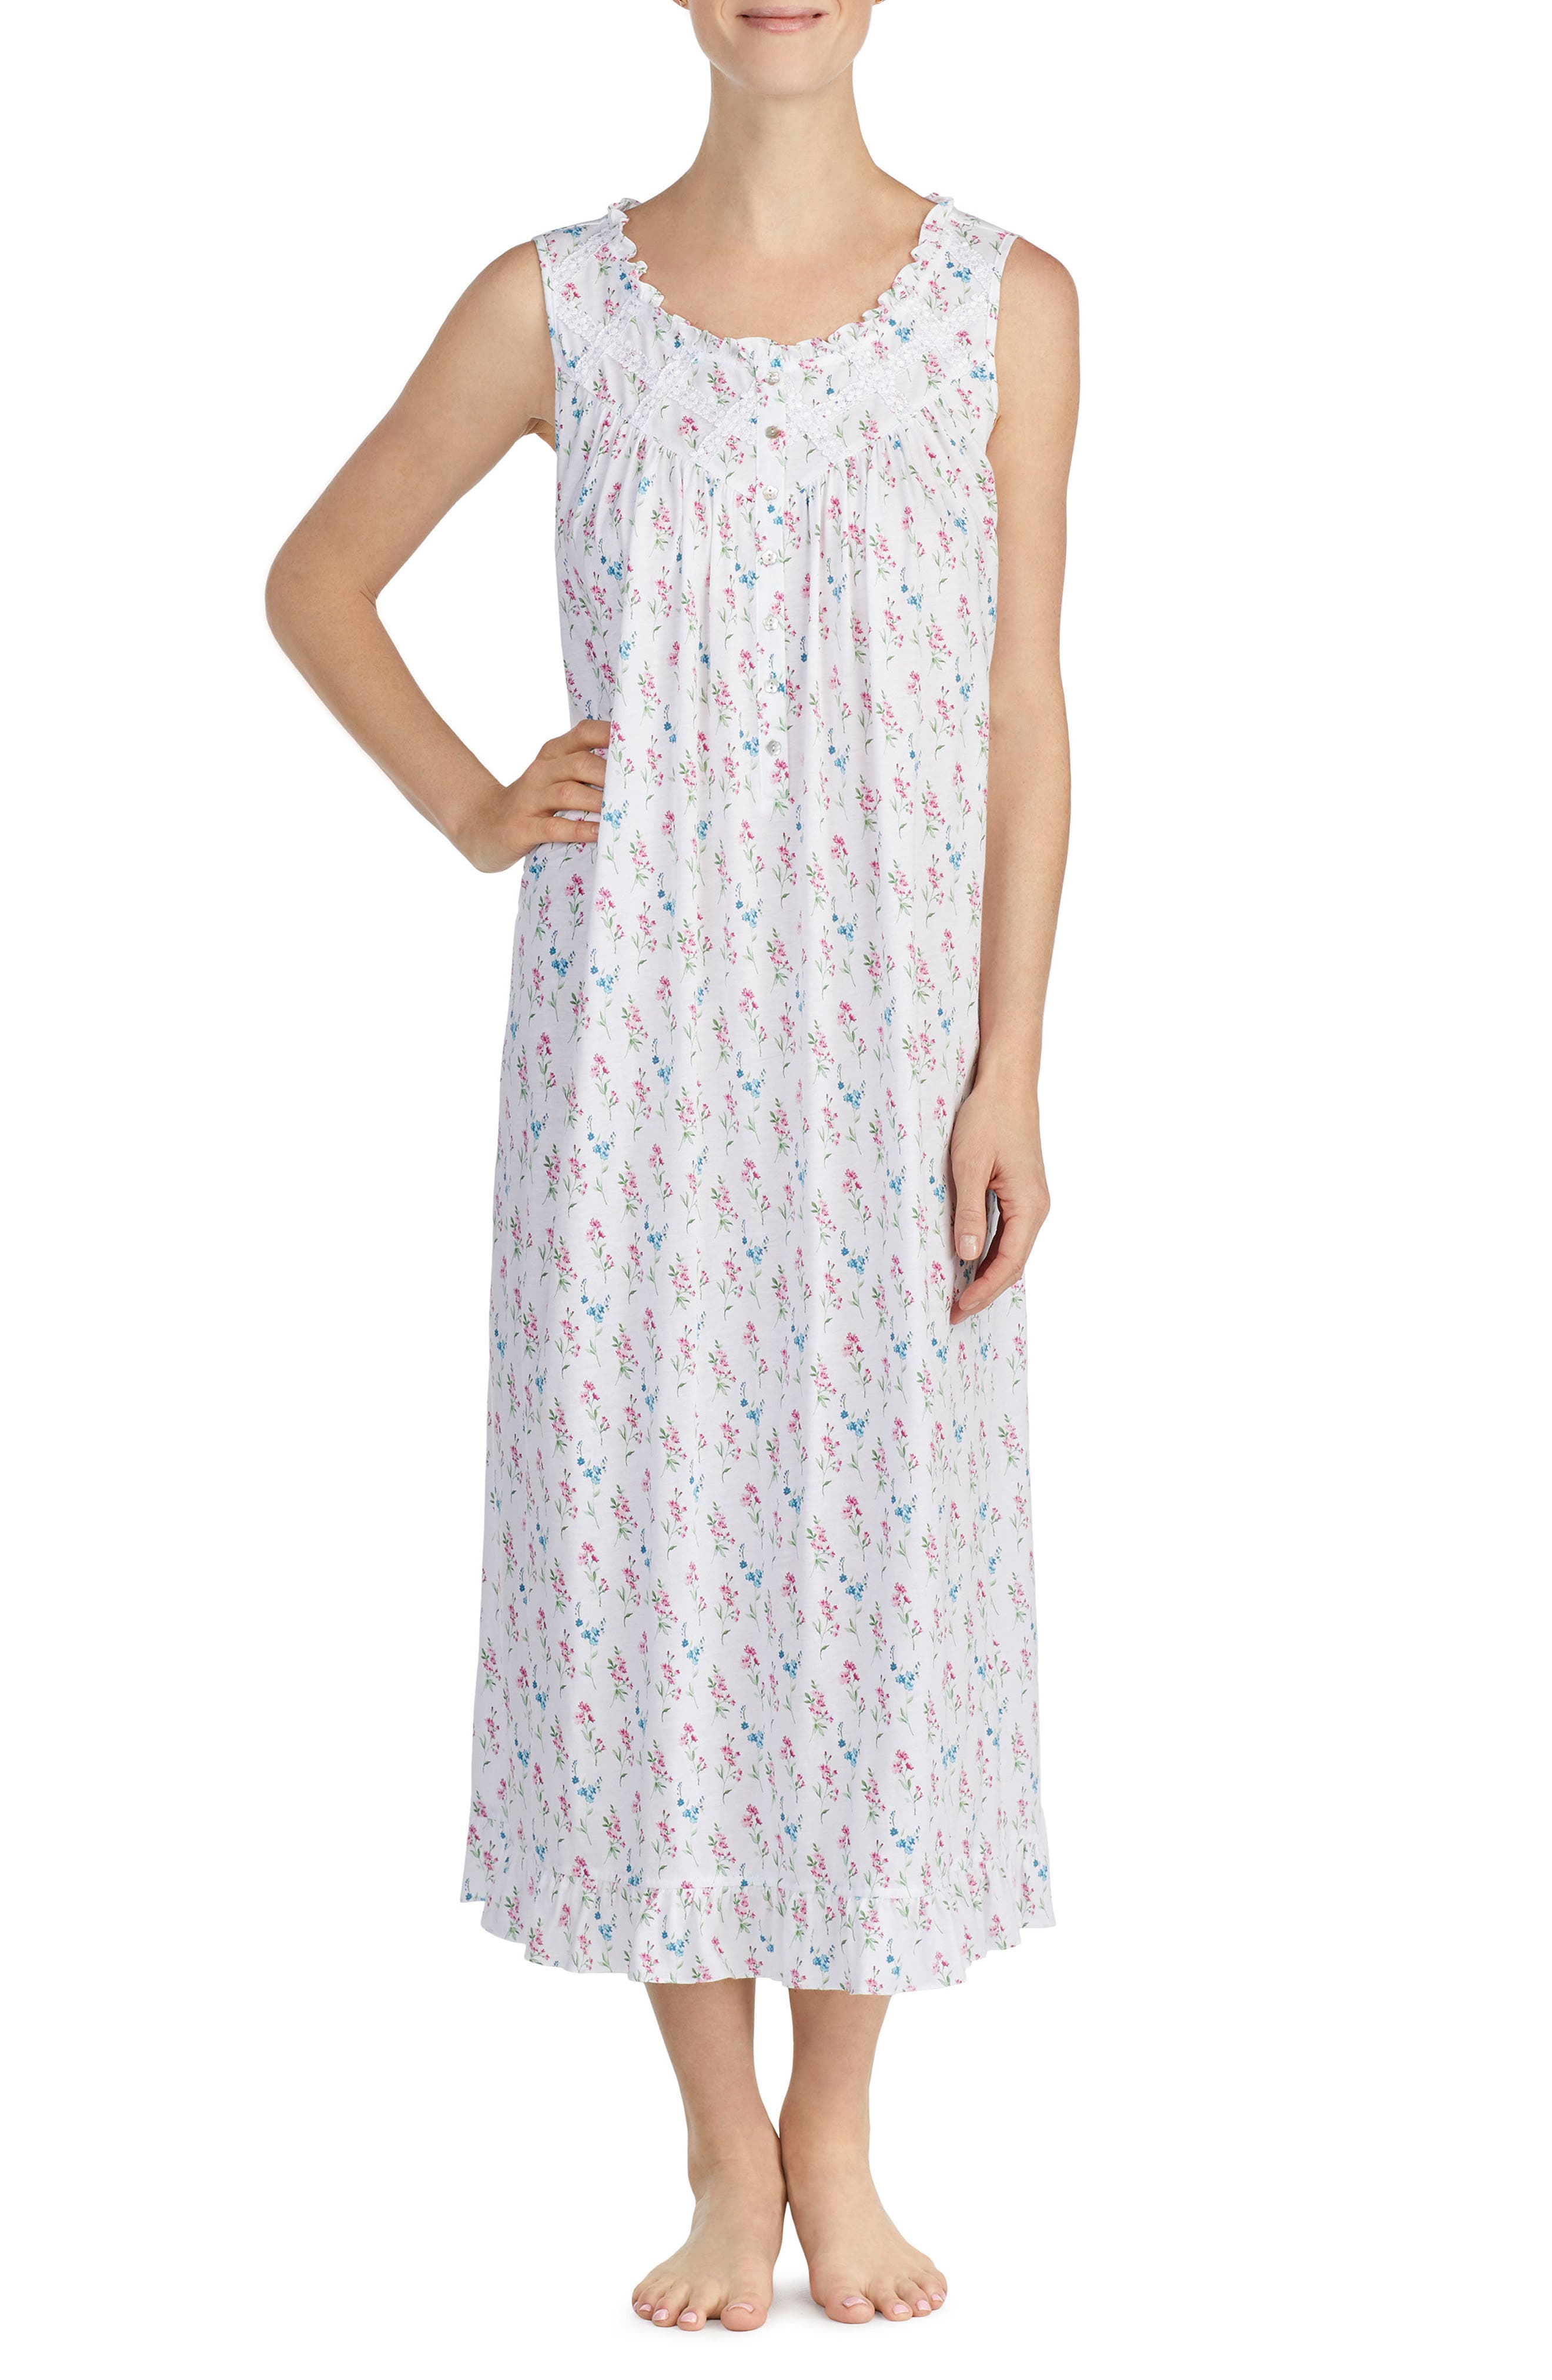 Long Nightgown,                         Main,                         color, White Grnd Multi Fall Floral